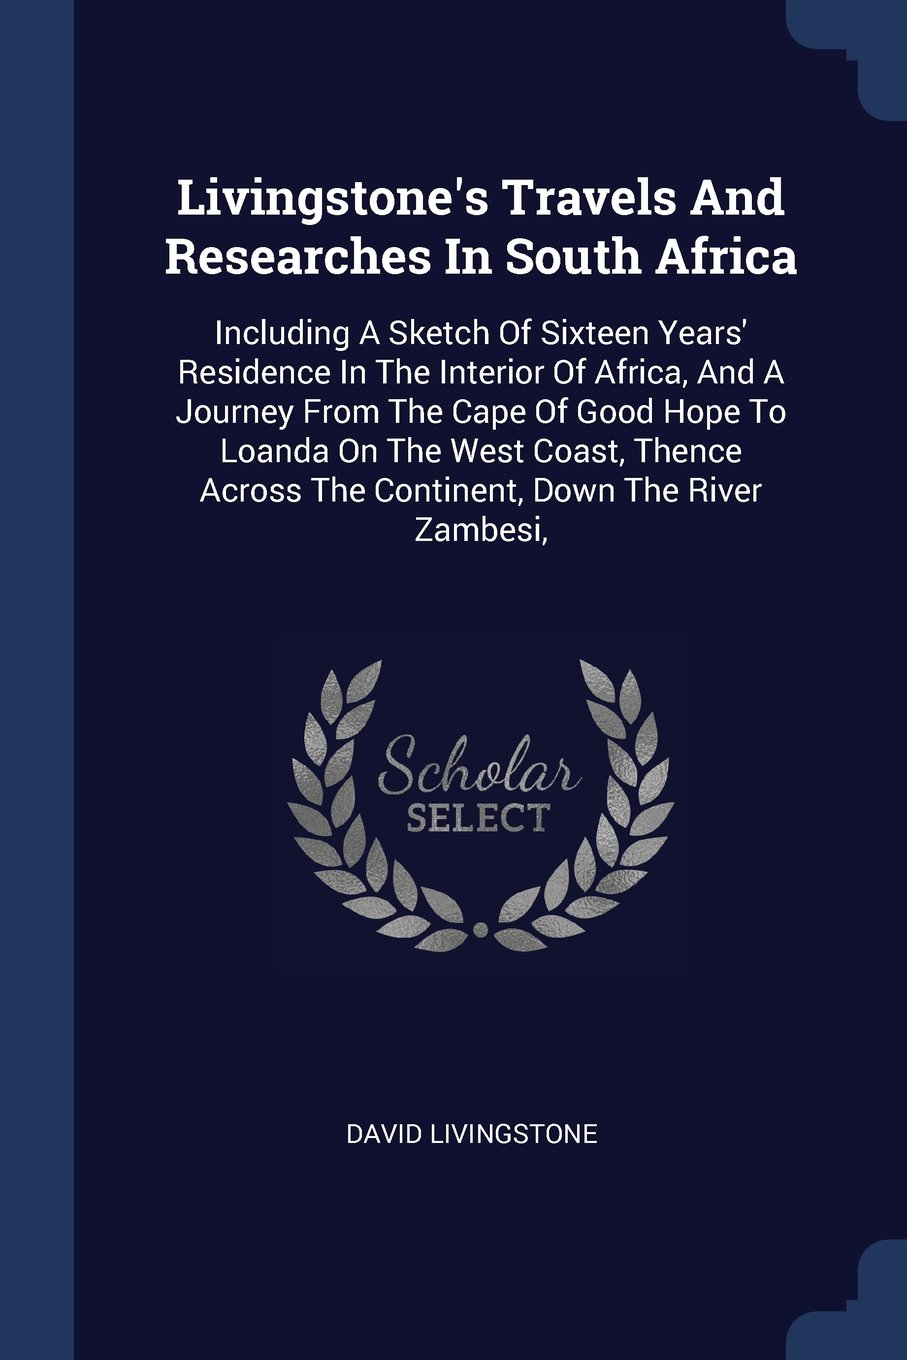 Livingstone's Travels And Researches In South Africa: Including A Sketch Of Sixteen Years' Residence In The Interior Of Africa, And A Journey From The ... Across The Continent, Down The River Zambesi, ebook